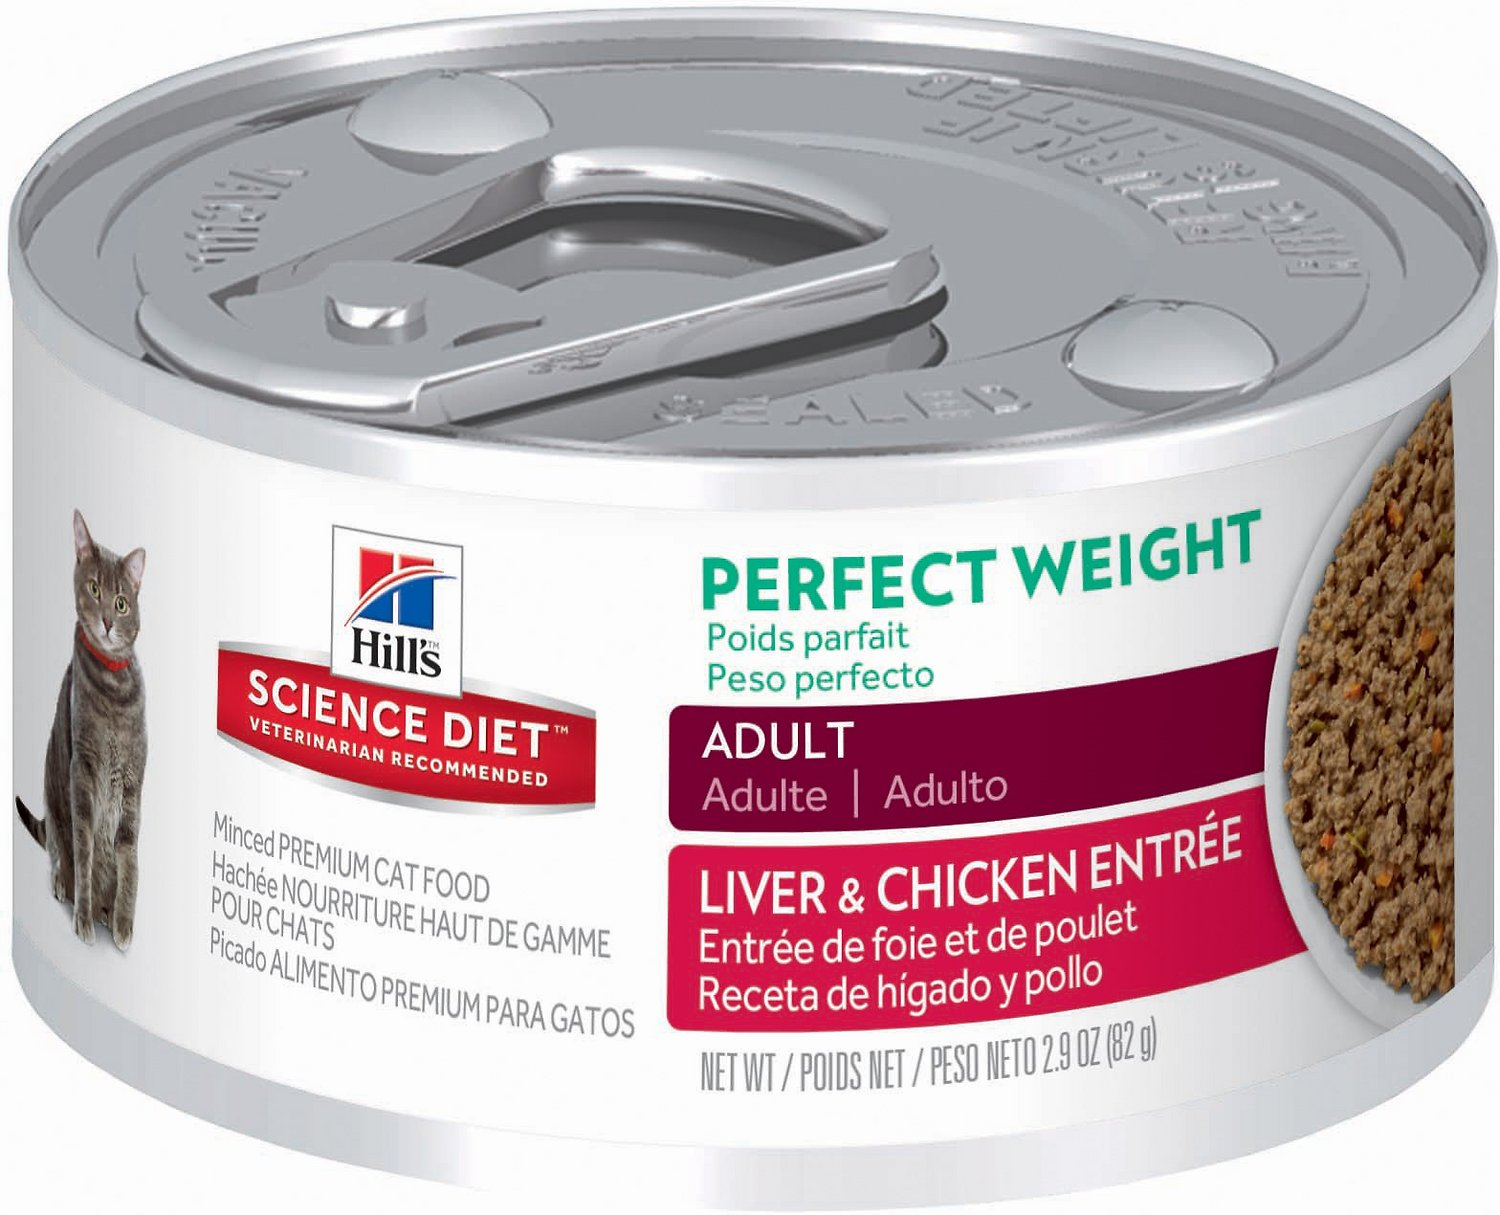 Science Diet Perfect Weight Canned Dog Food